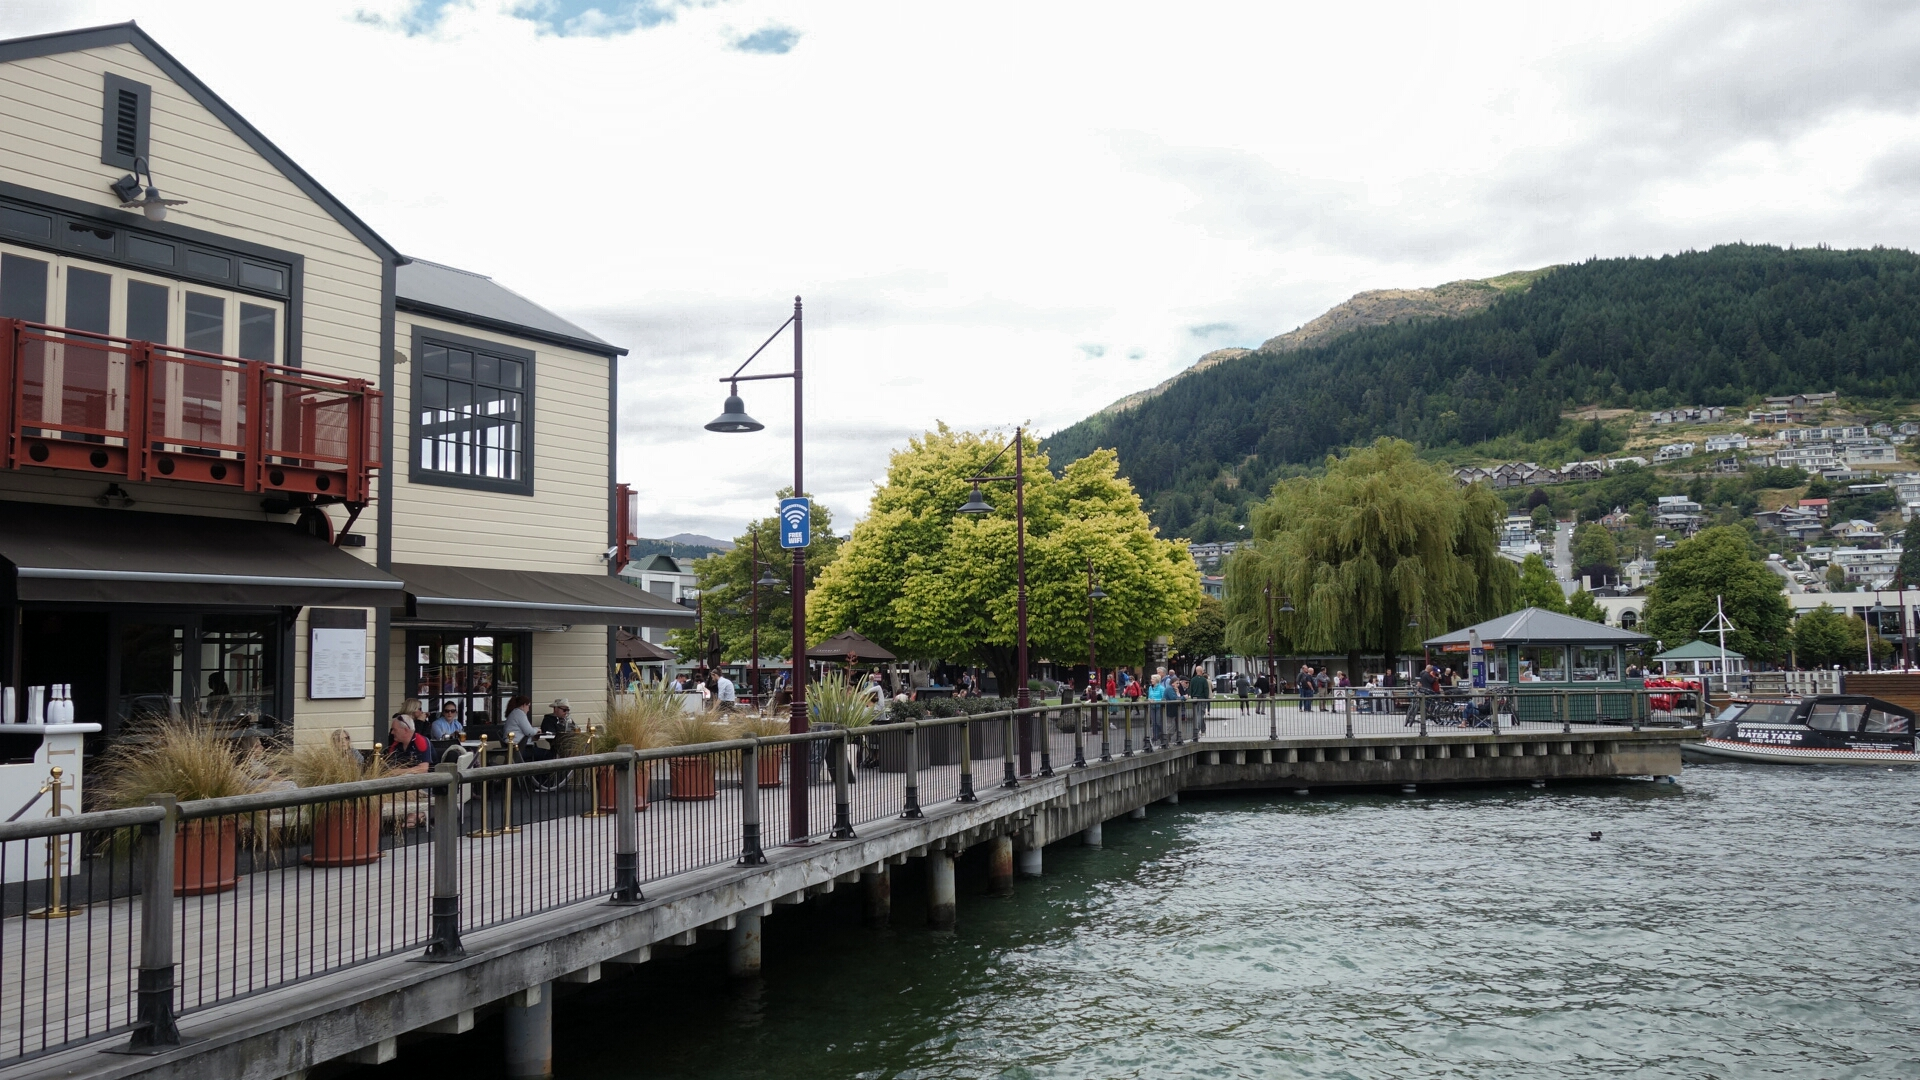 Klettersteig Queenstown : Te araroa: arrowtown bis queenstown u2013 essen und 10.02